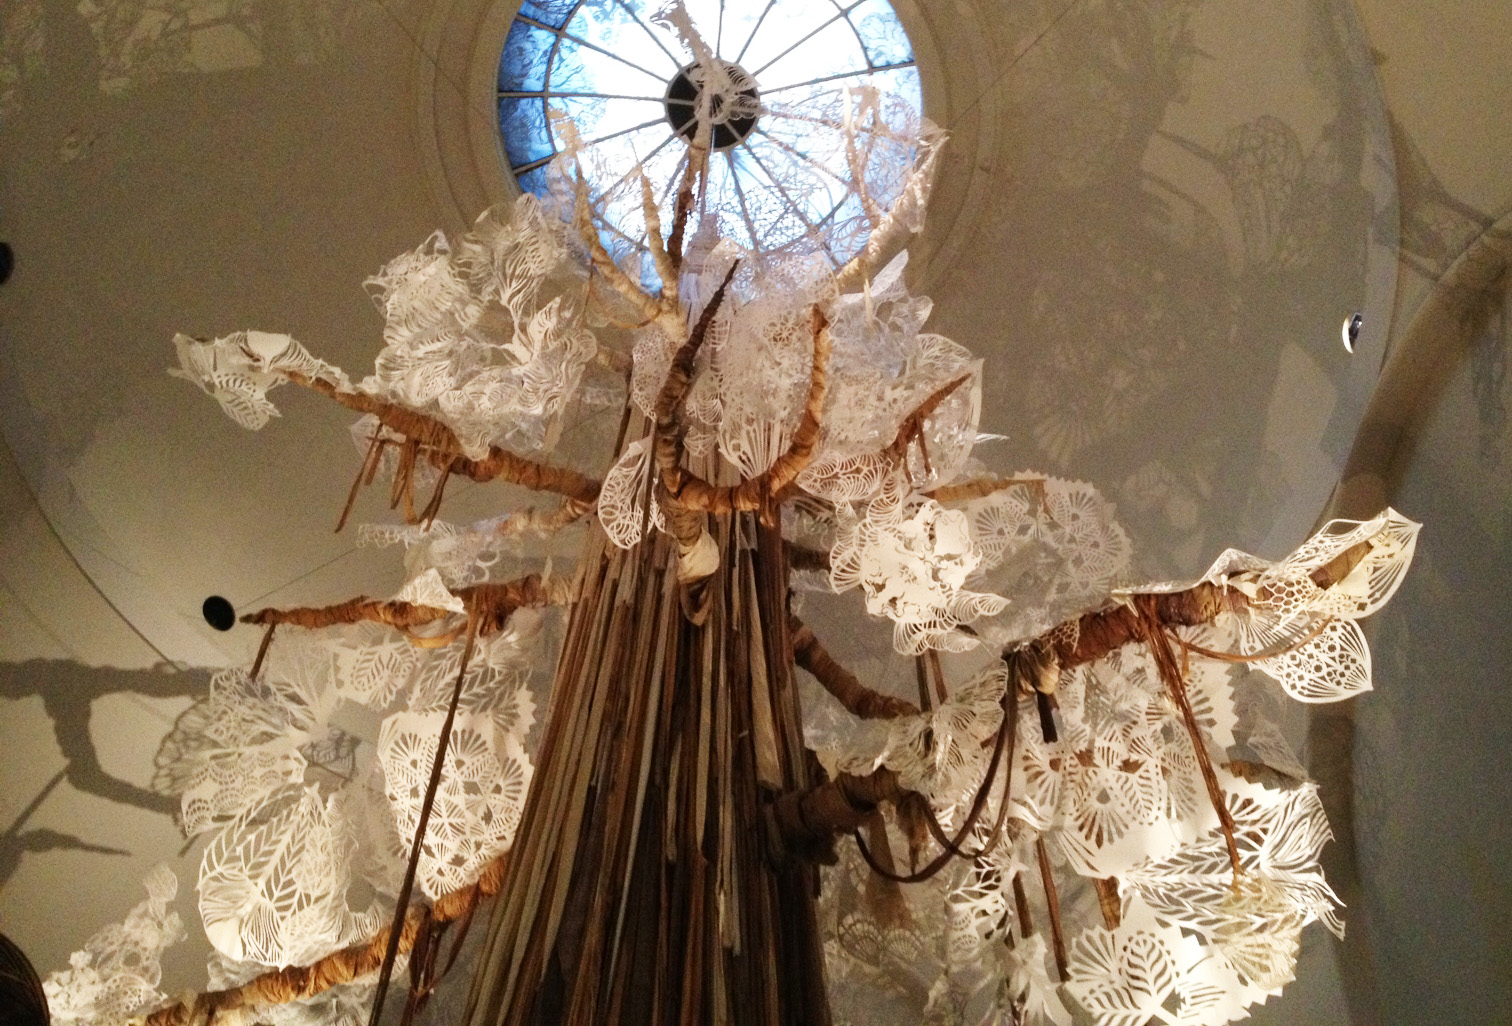 This giant tree created from paper mache, dyed fabric and paper cuts, was the center of the Swoon exhibit and served as a dock for two hand made  boats from a previous art piece.